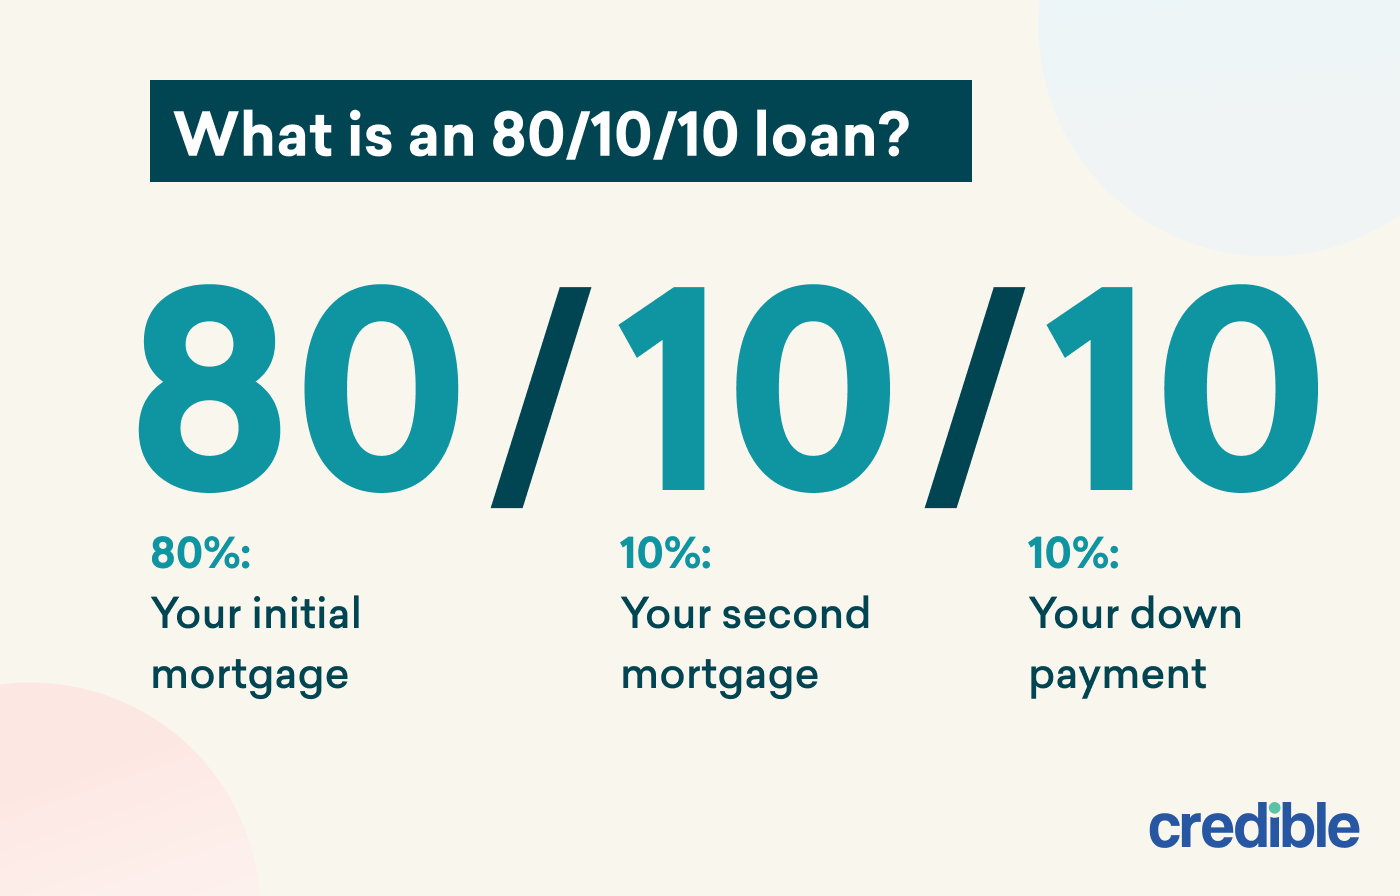 80-10-10 Loan- Infographic